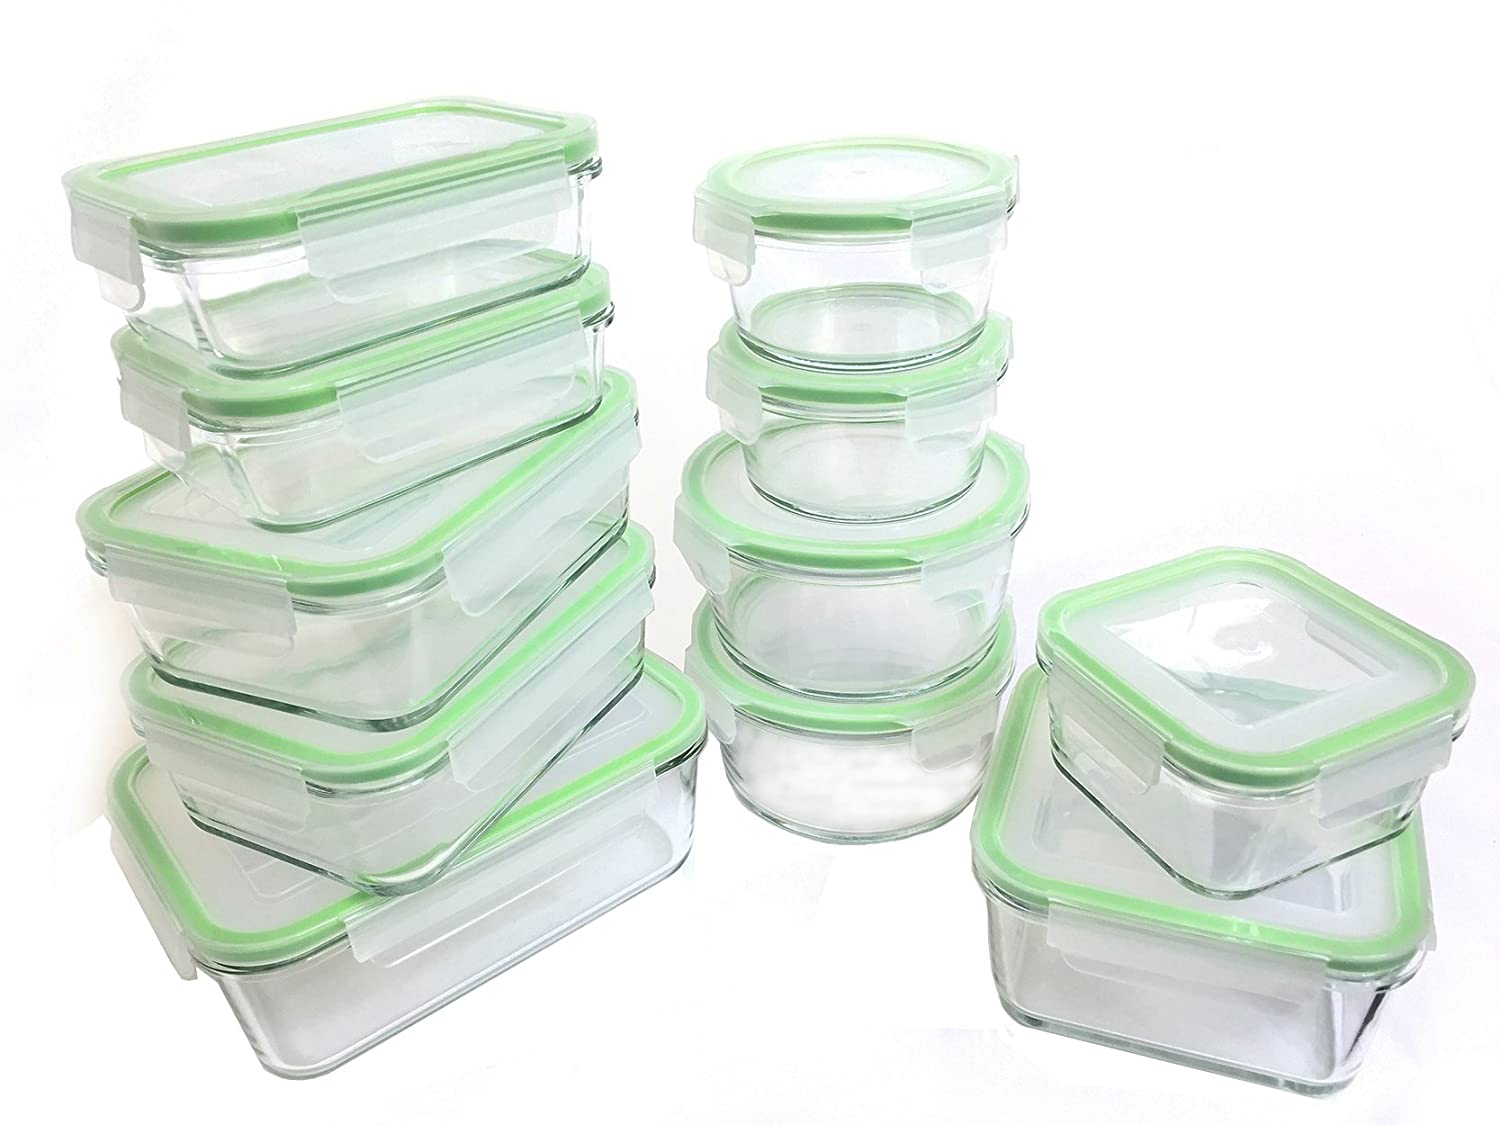 Kinetic 55043 22-Piece Glassworks Series Food Storage Container Set, Clear Kinetic A Division of Pathway